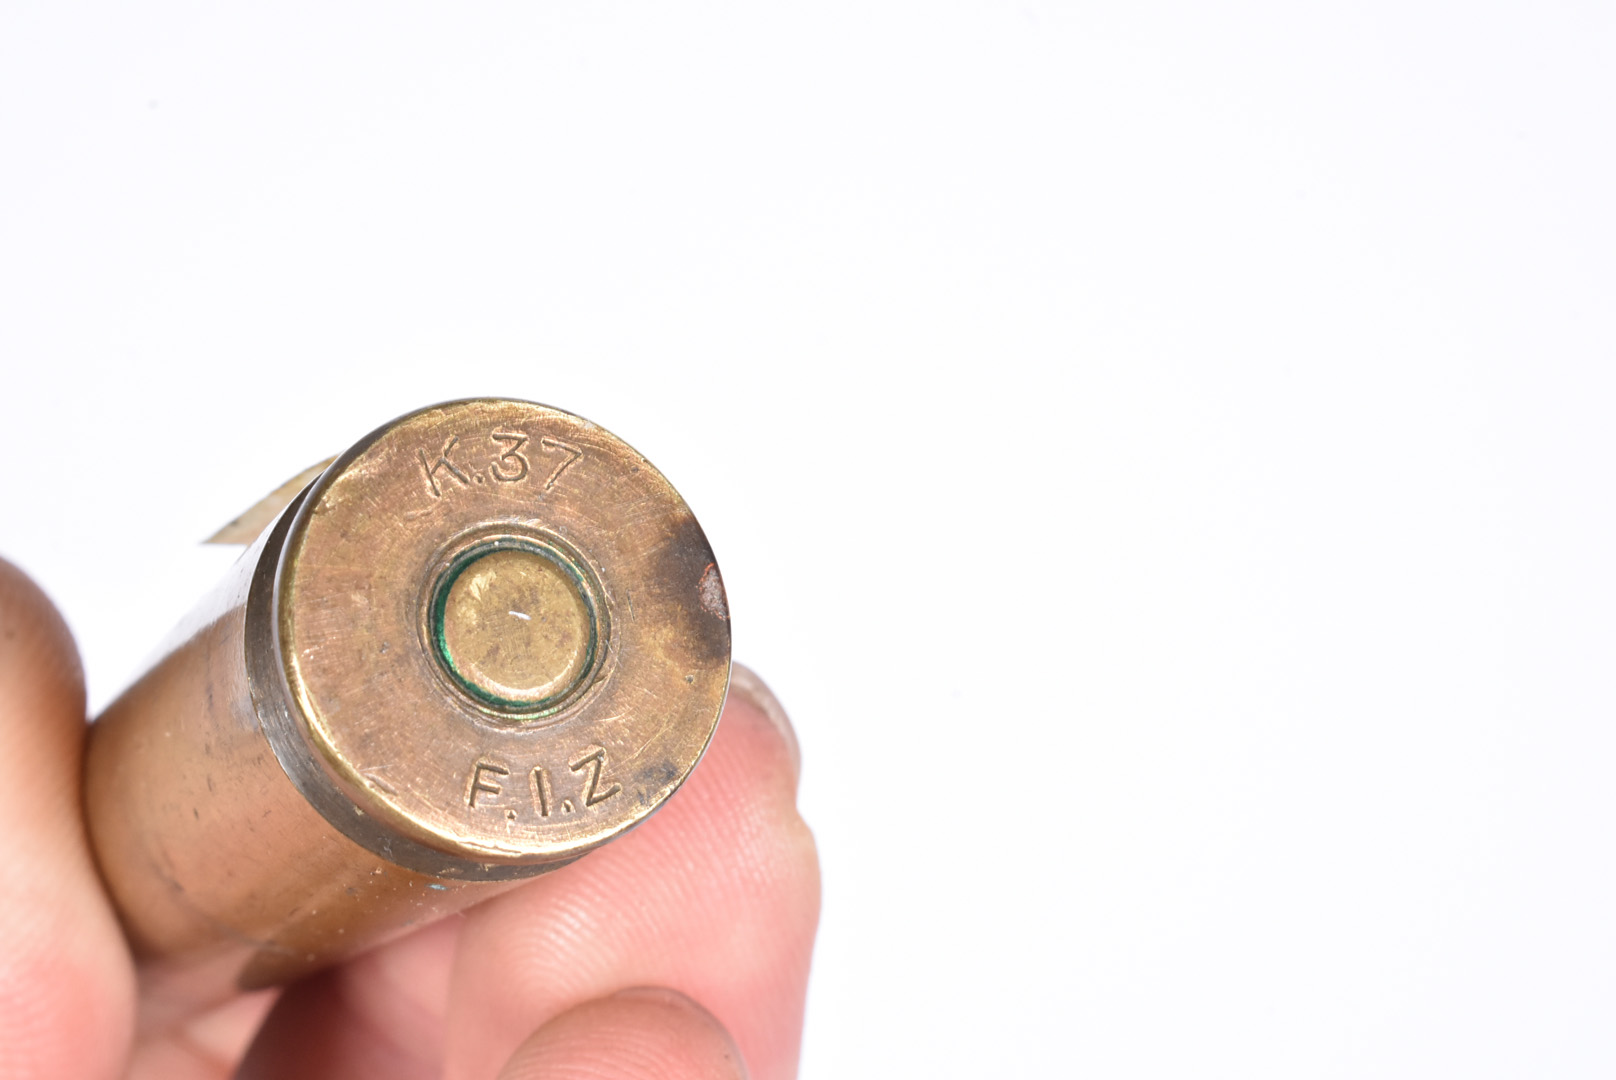 A rare .50 Vicker inert round, unstruck with steel head, stamped K37 F.I.Z to the base, 11cm - Image 2 of 2